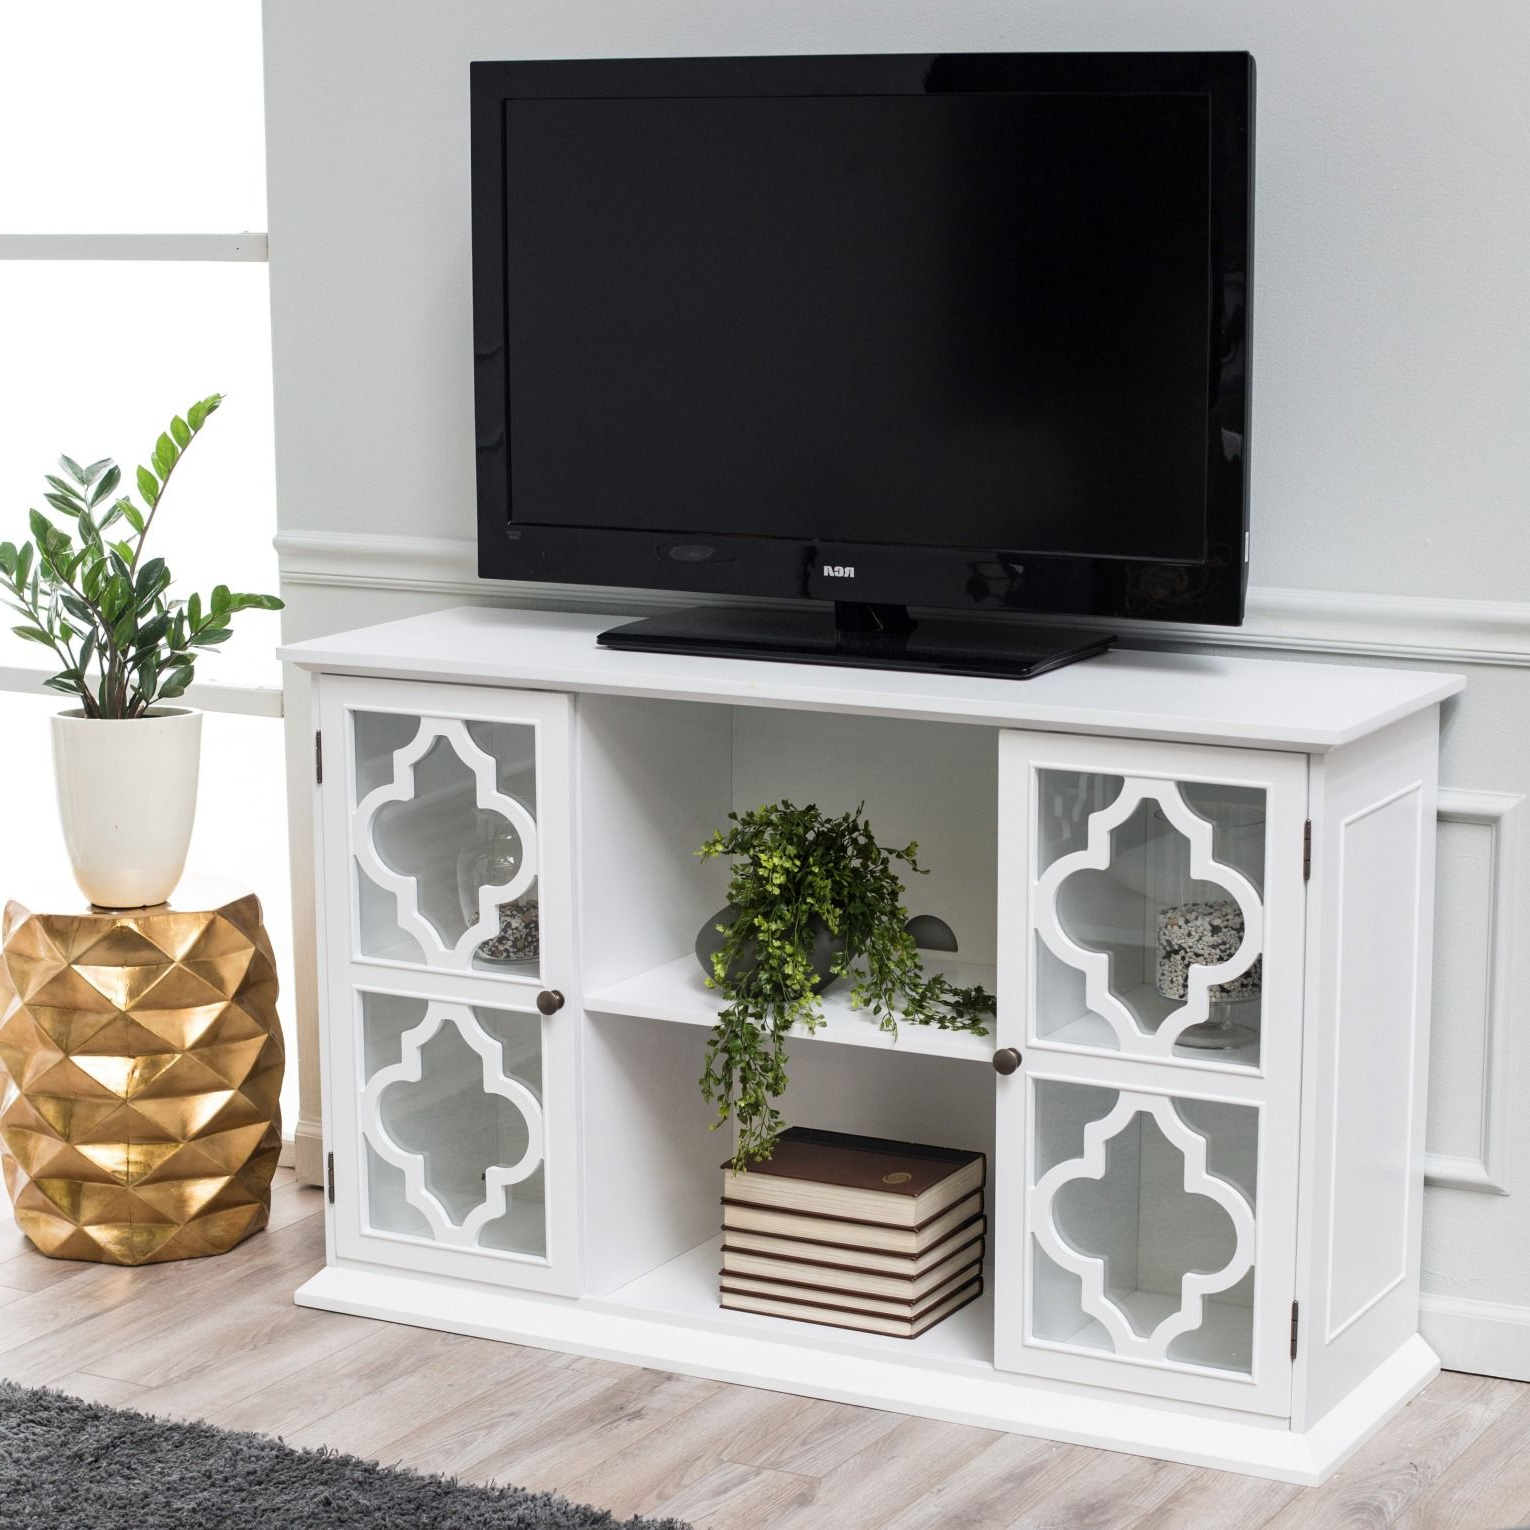 Moroccan Inspired Tv Stand | Tv Unit In 2019 | Pinterest | Living Within Oxford 84 Inch Tv Stands (View 9 of 20)